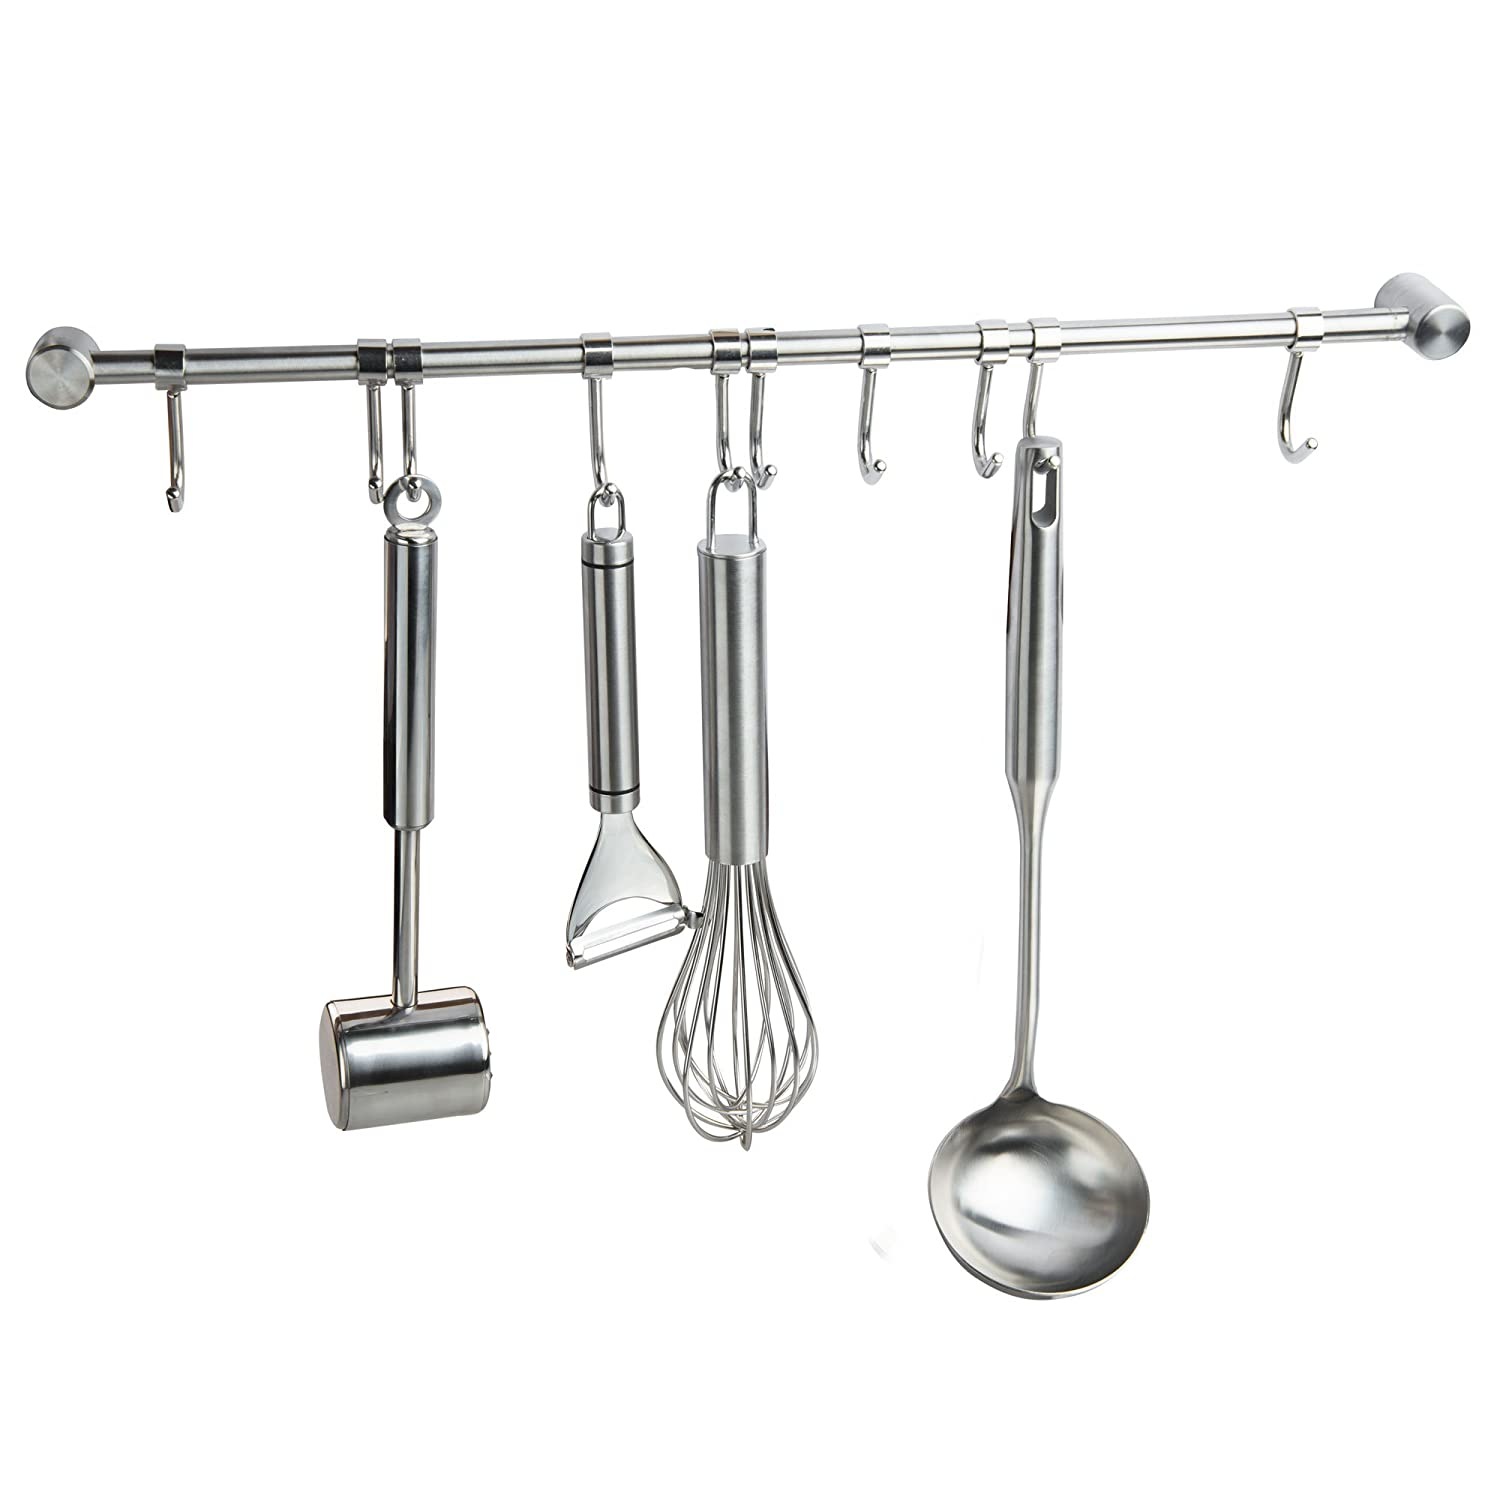 IMEEA 19.5inch Wall-mounted SUS304 Stainless Steel Kitchen Rail with 10 Movable Hooks Hangers (10 Hooks)